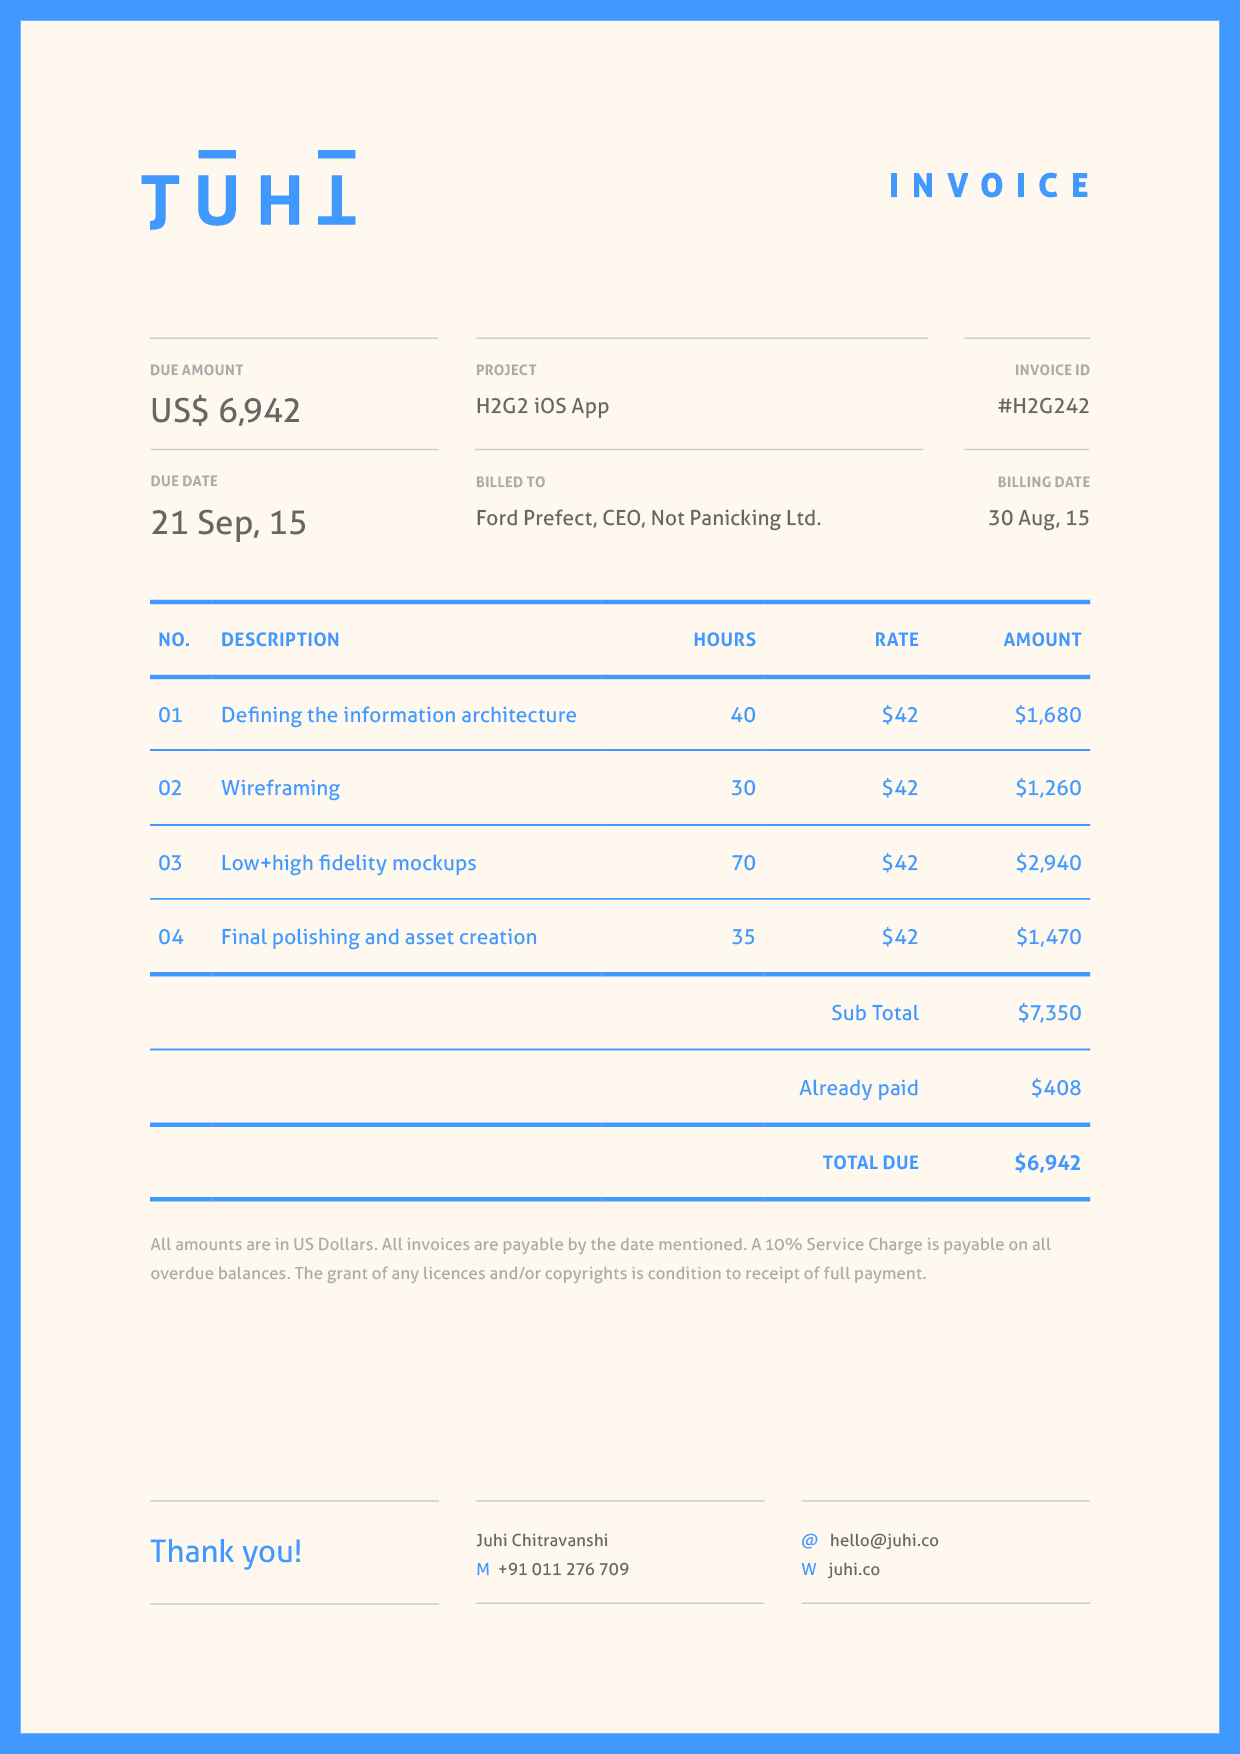 Pigbrotherus  Unique Dont Hold Back On Your Invoice  Inspiring Designs  With Fetching Invoice By Juhi Chitravanshi Follow With Charming Rental Receipt Sample Also Receipt Tracker App Android In Addition How To Print Fake Receipts And Dental Receipt Template As Well As Home Depot Receipt Reprint Additionally Goodwill Receipt For Taxes From Inspirationfeedcom With Pigbrotherus  Fetching Dont Hold Back On Your Invoice  Inspiring Designs  With Charming Invoice By Juhi Chitravanshi Follow And Unique Rental Receipt Sample Also Receipt Tracker App Android In Addition How To Print Fake Receipts From Inspirationfeedcom